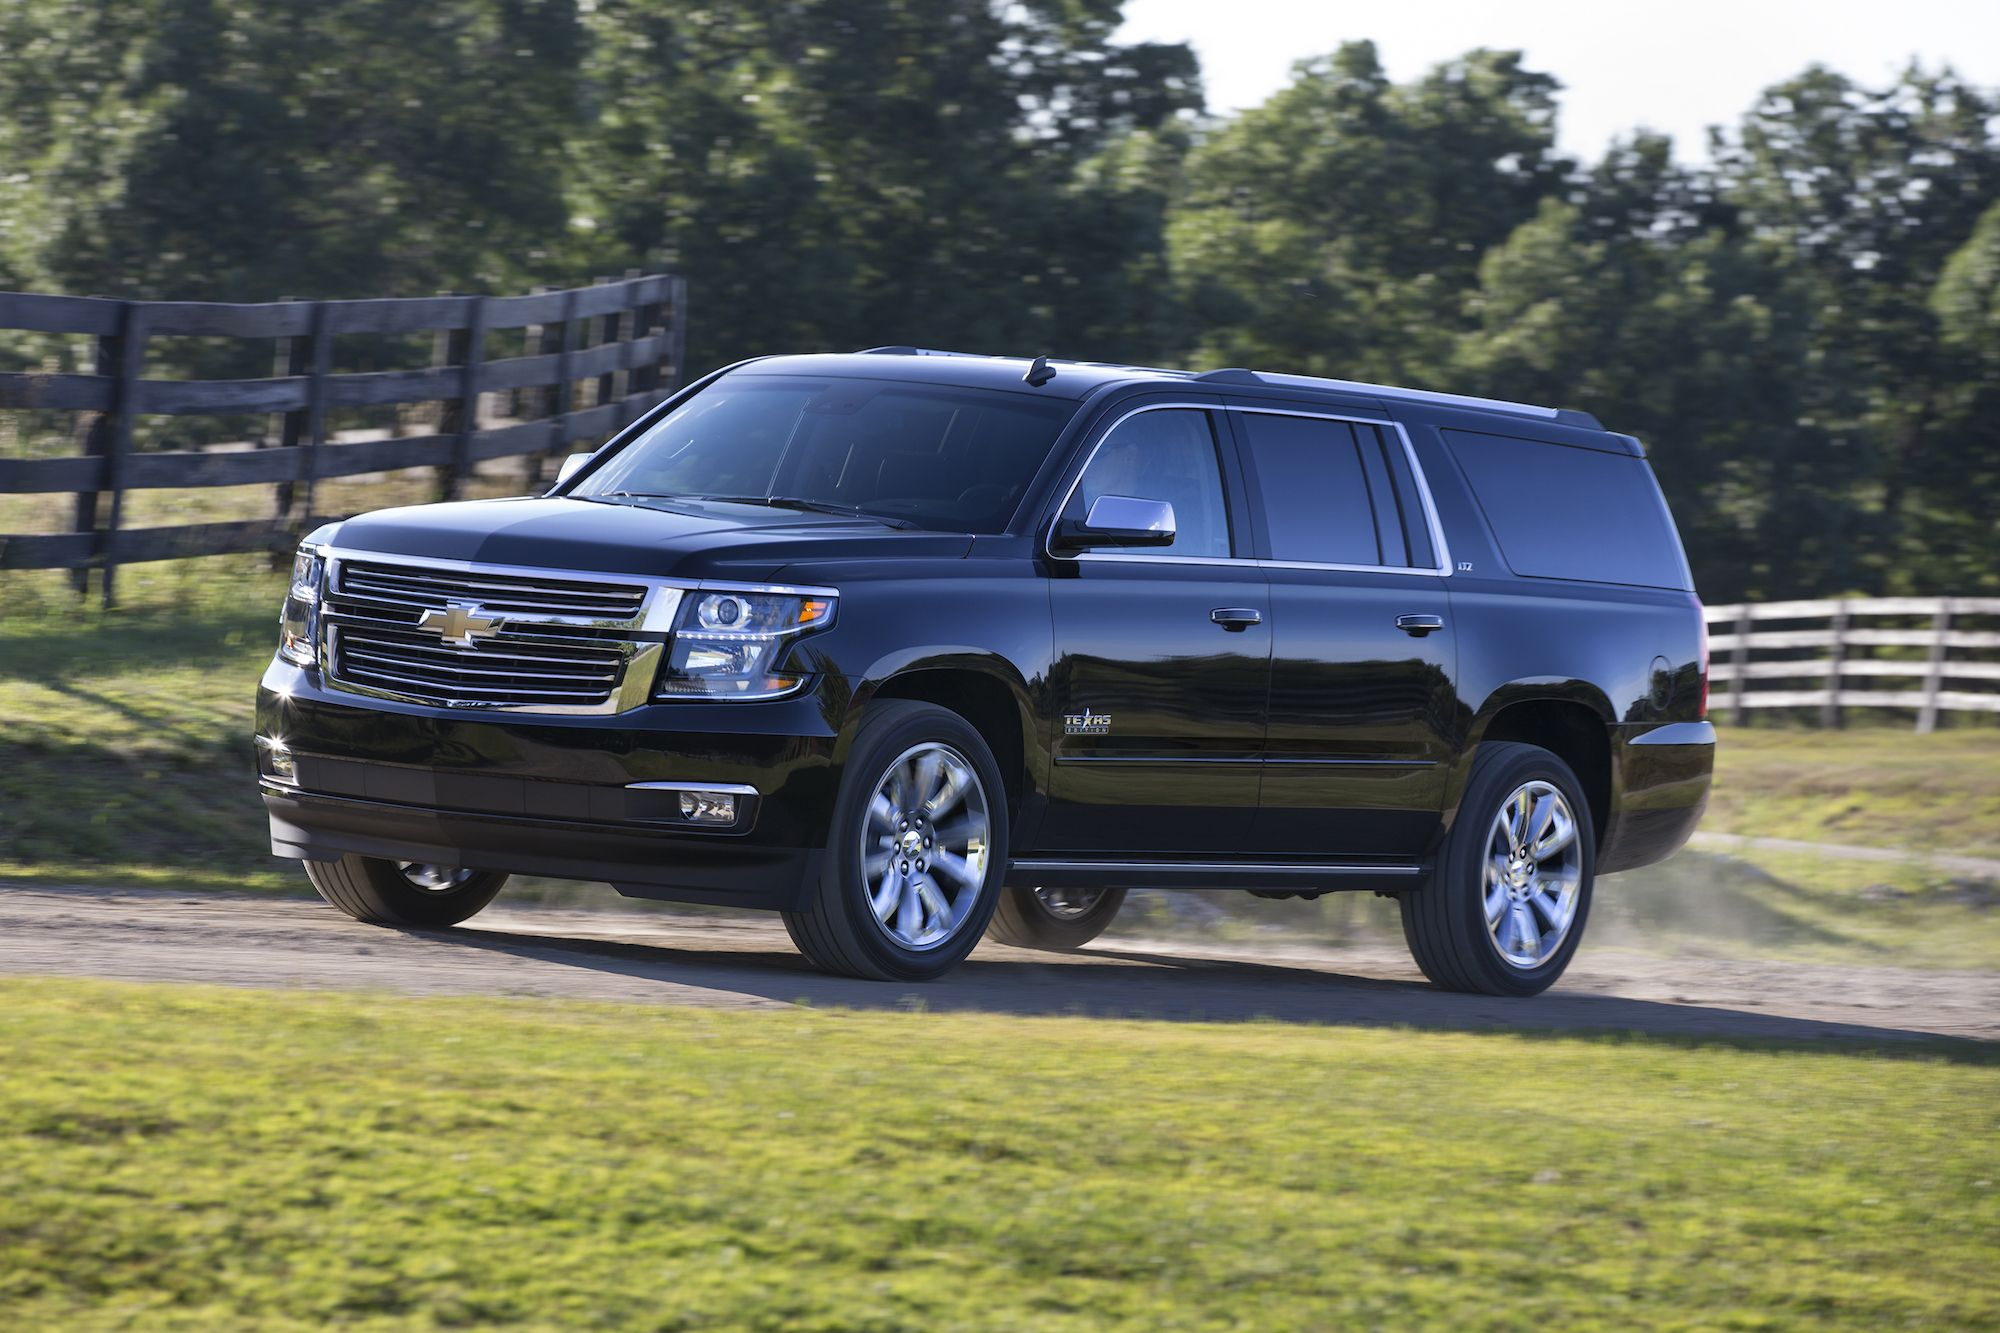 Get the latest reviews of the 2016 Chevrolet Suburban. Find prices, buying advice, pictures, expert ratings, safety features, specs and price quotes.